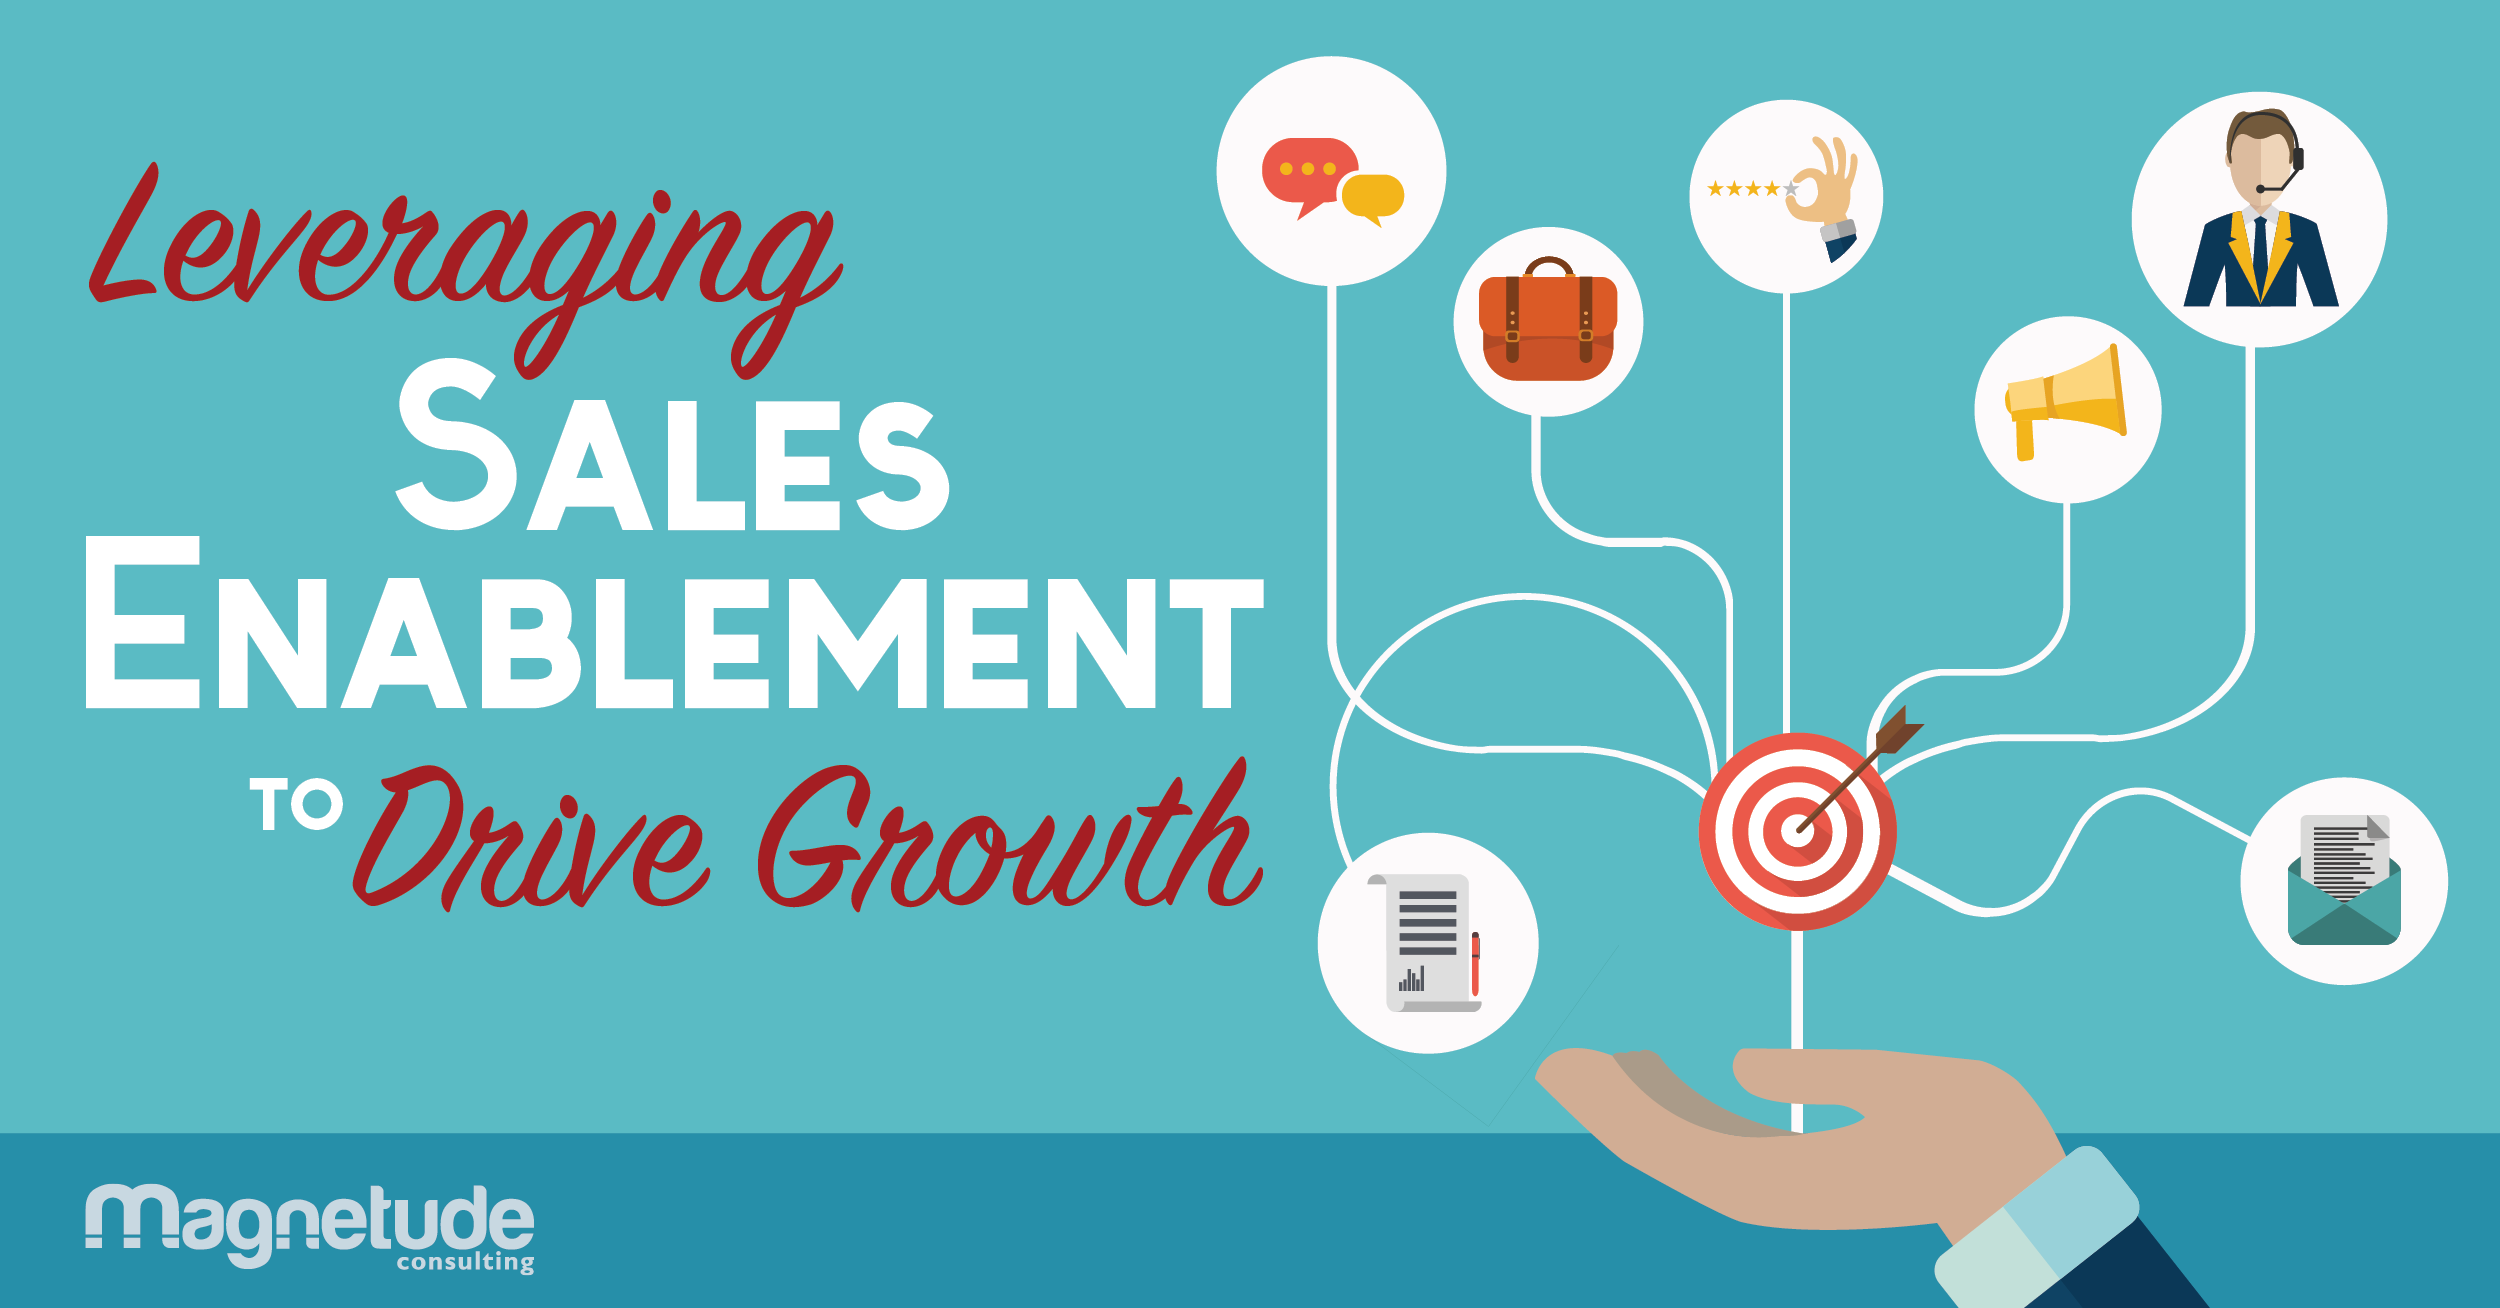 Leveraging B2B Marketing Sales Enablement to Drive Growth